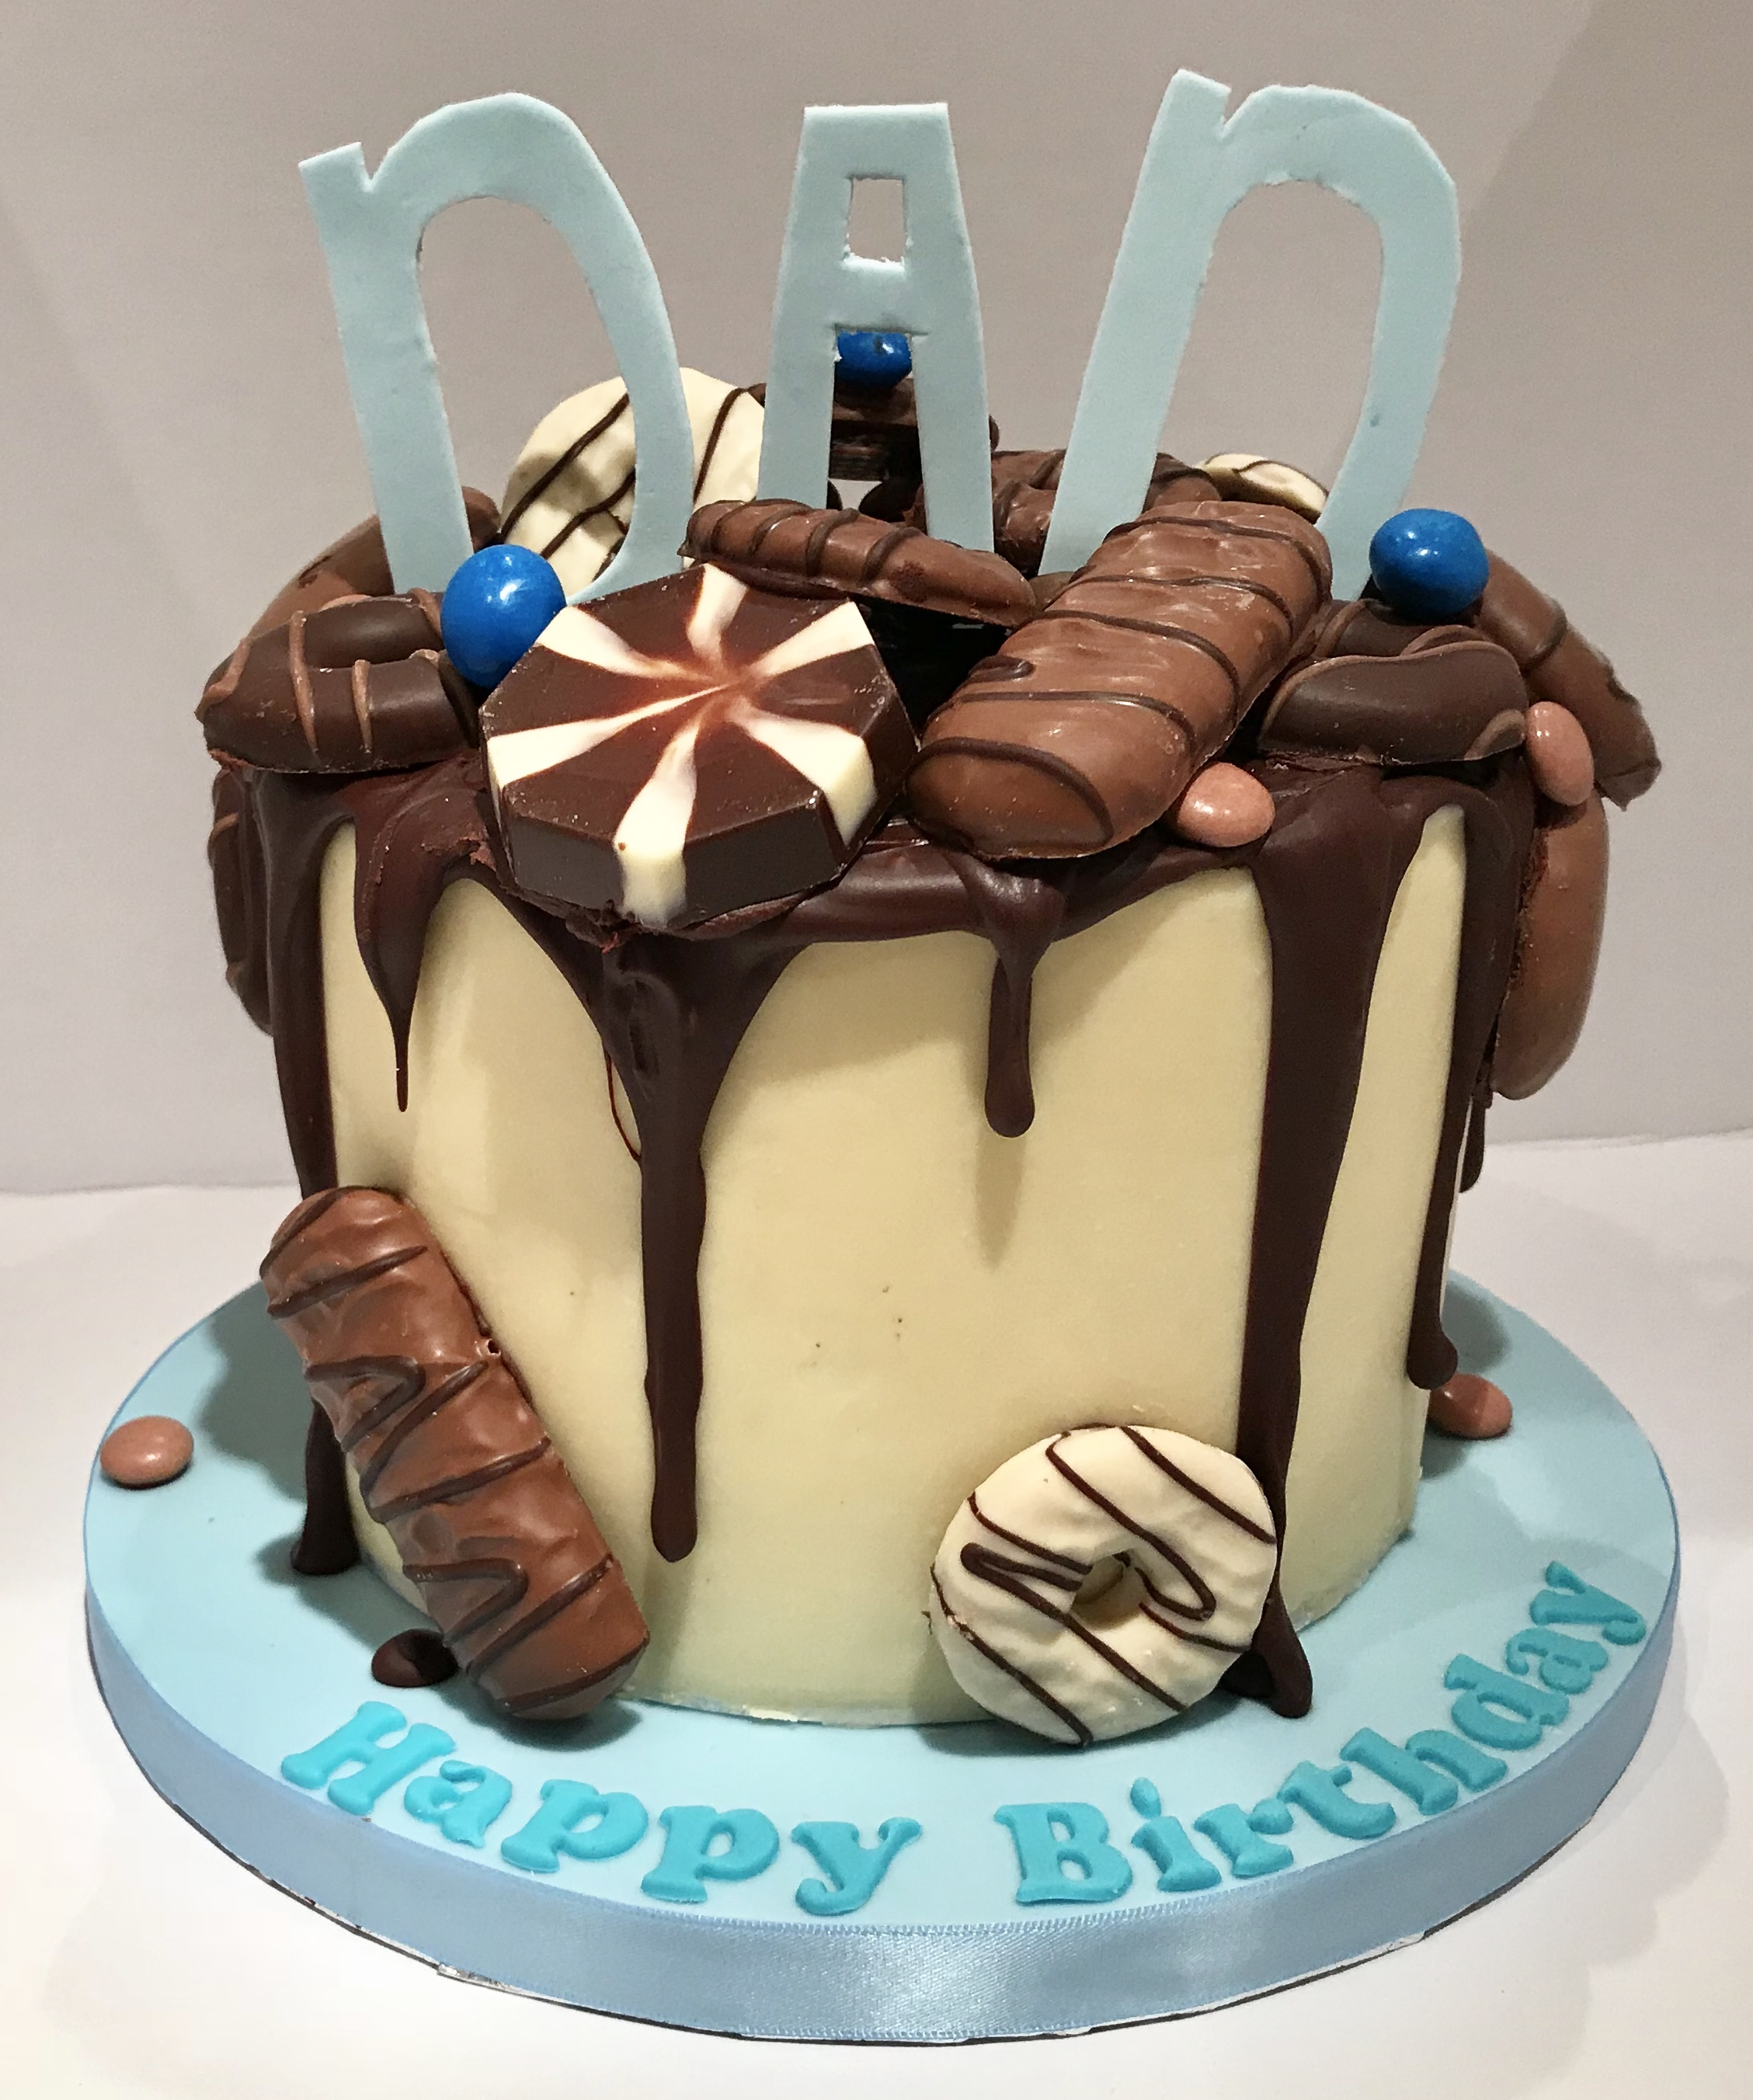 Chocolate ganache drip cake for all of the chocolaholic Dads!